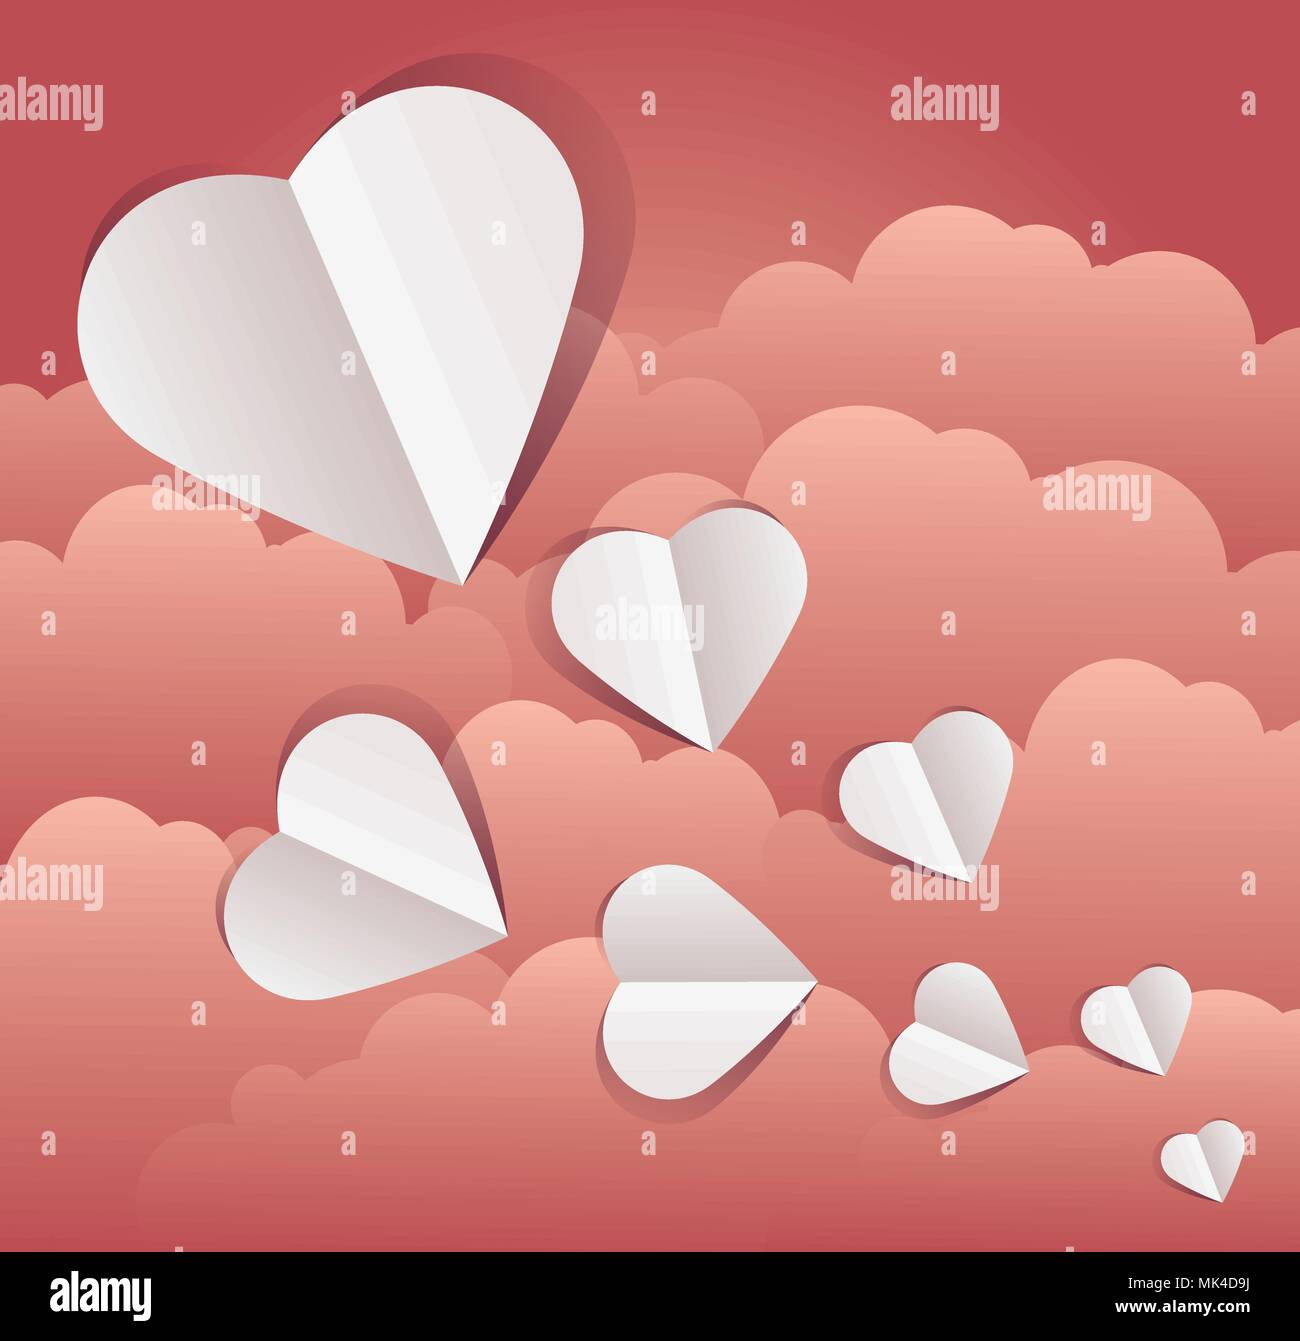 Vector Illustration Of Paper Cut Out Hearts With Clouds Copy Space Art Design